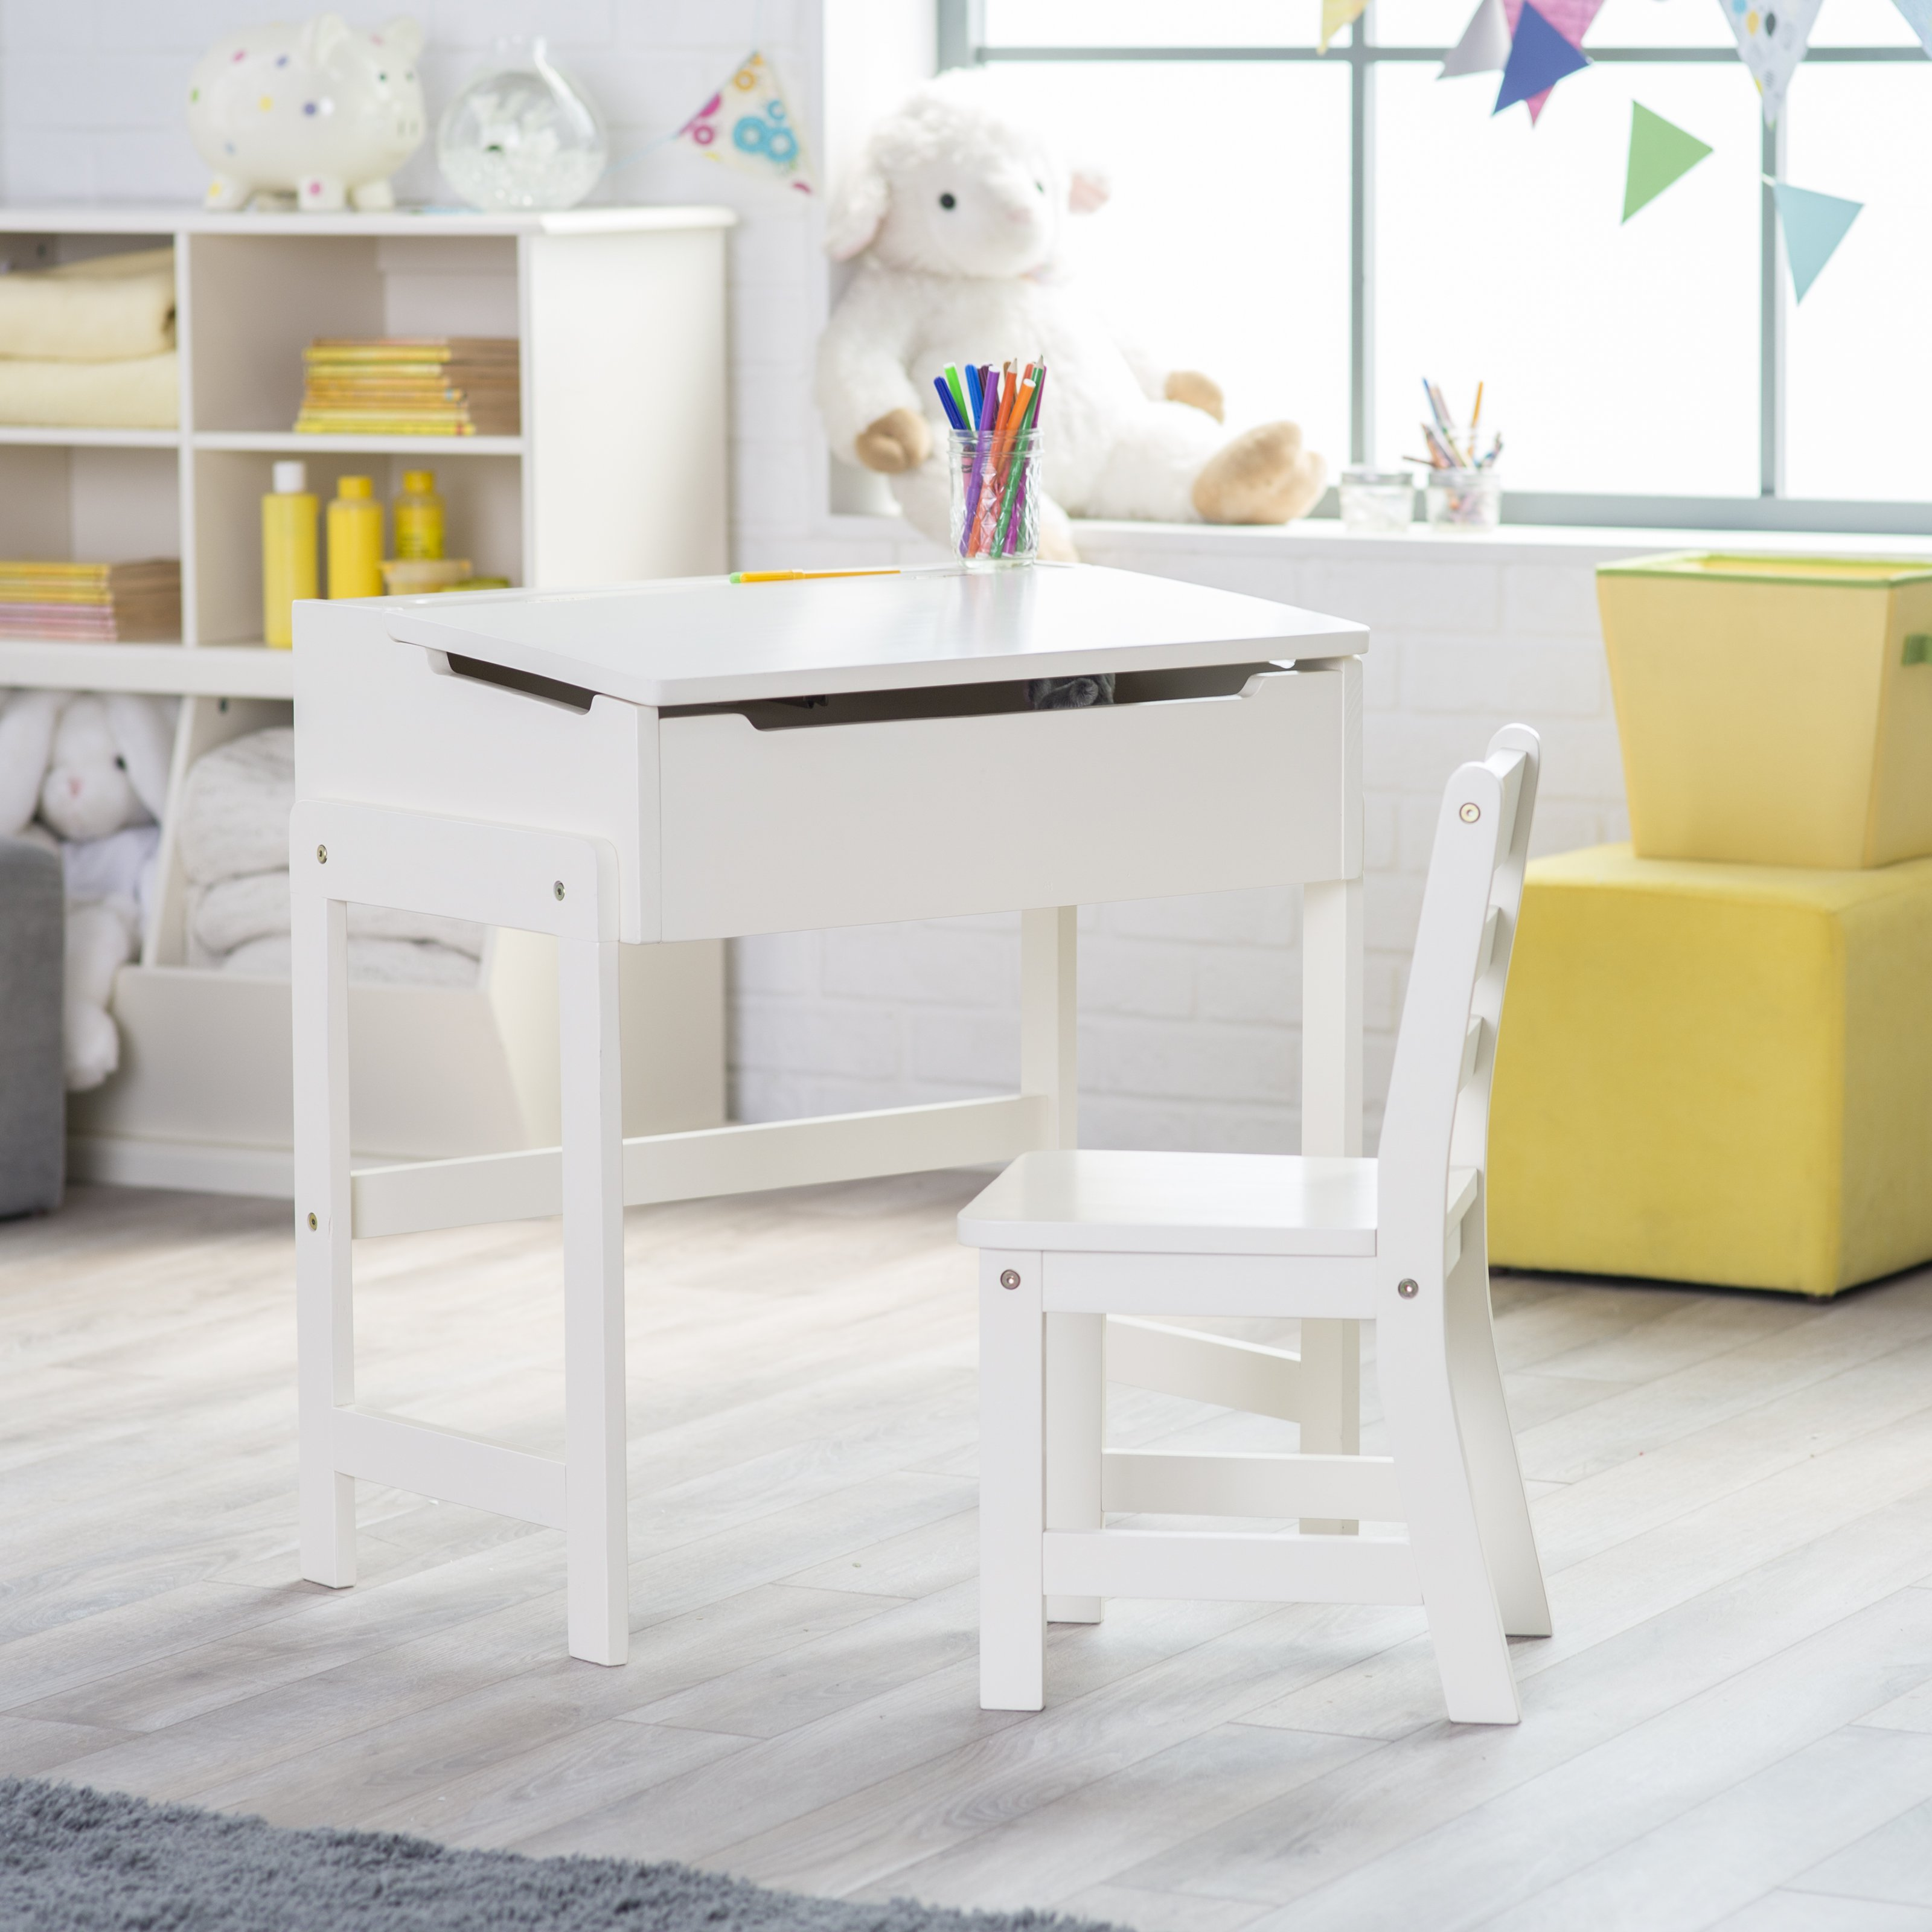 Desk And Chair Set Lipper Schoolhouse Desk And Chair Set Vanilla